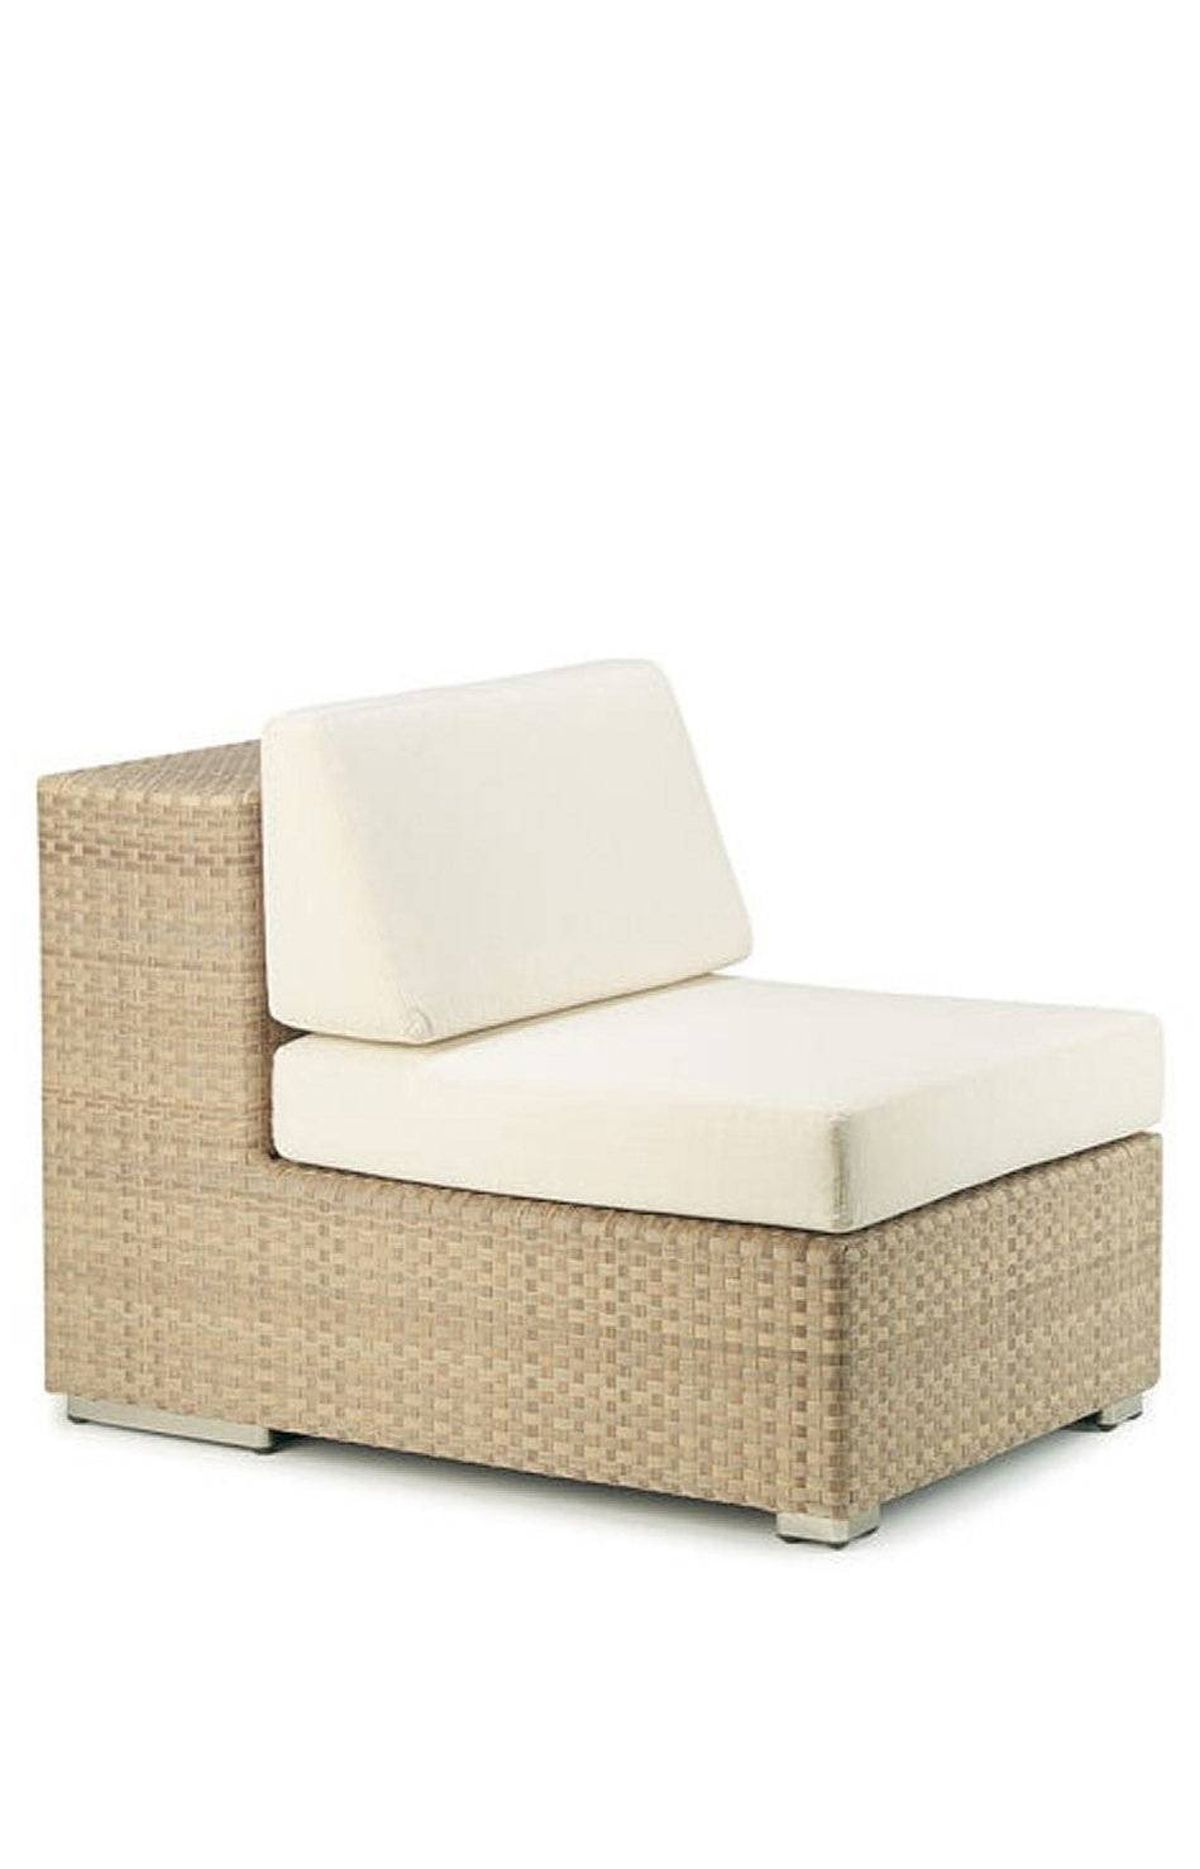 THE POST-MODERNIST Dedon's lounge module with pillows $2,470 at studio b (www.studiobhome.com).